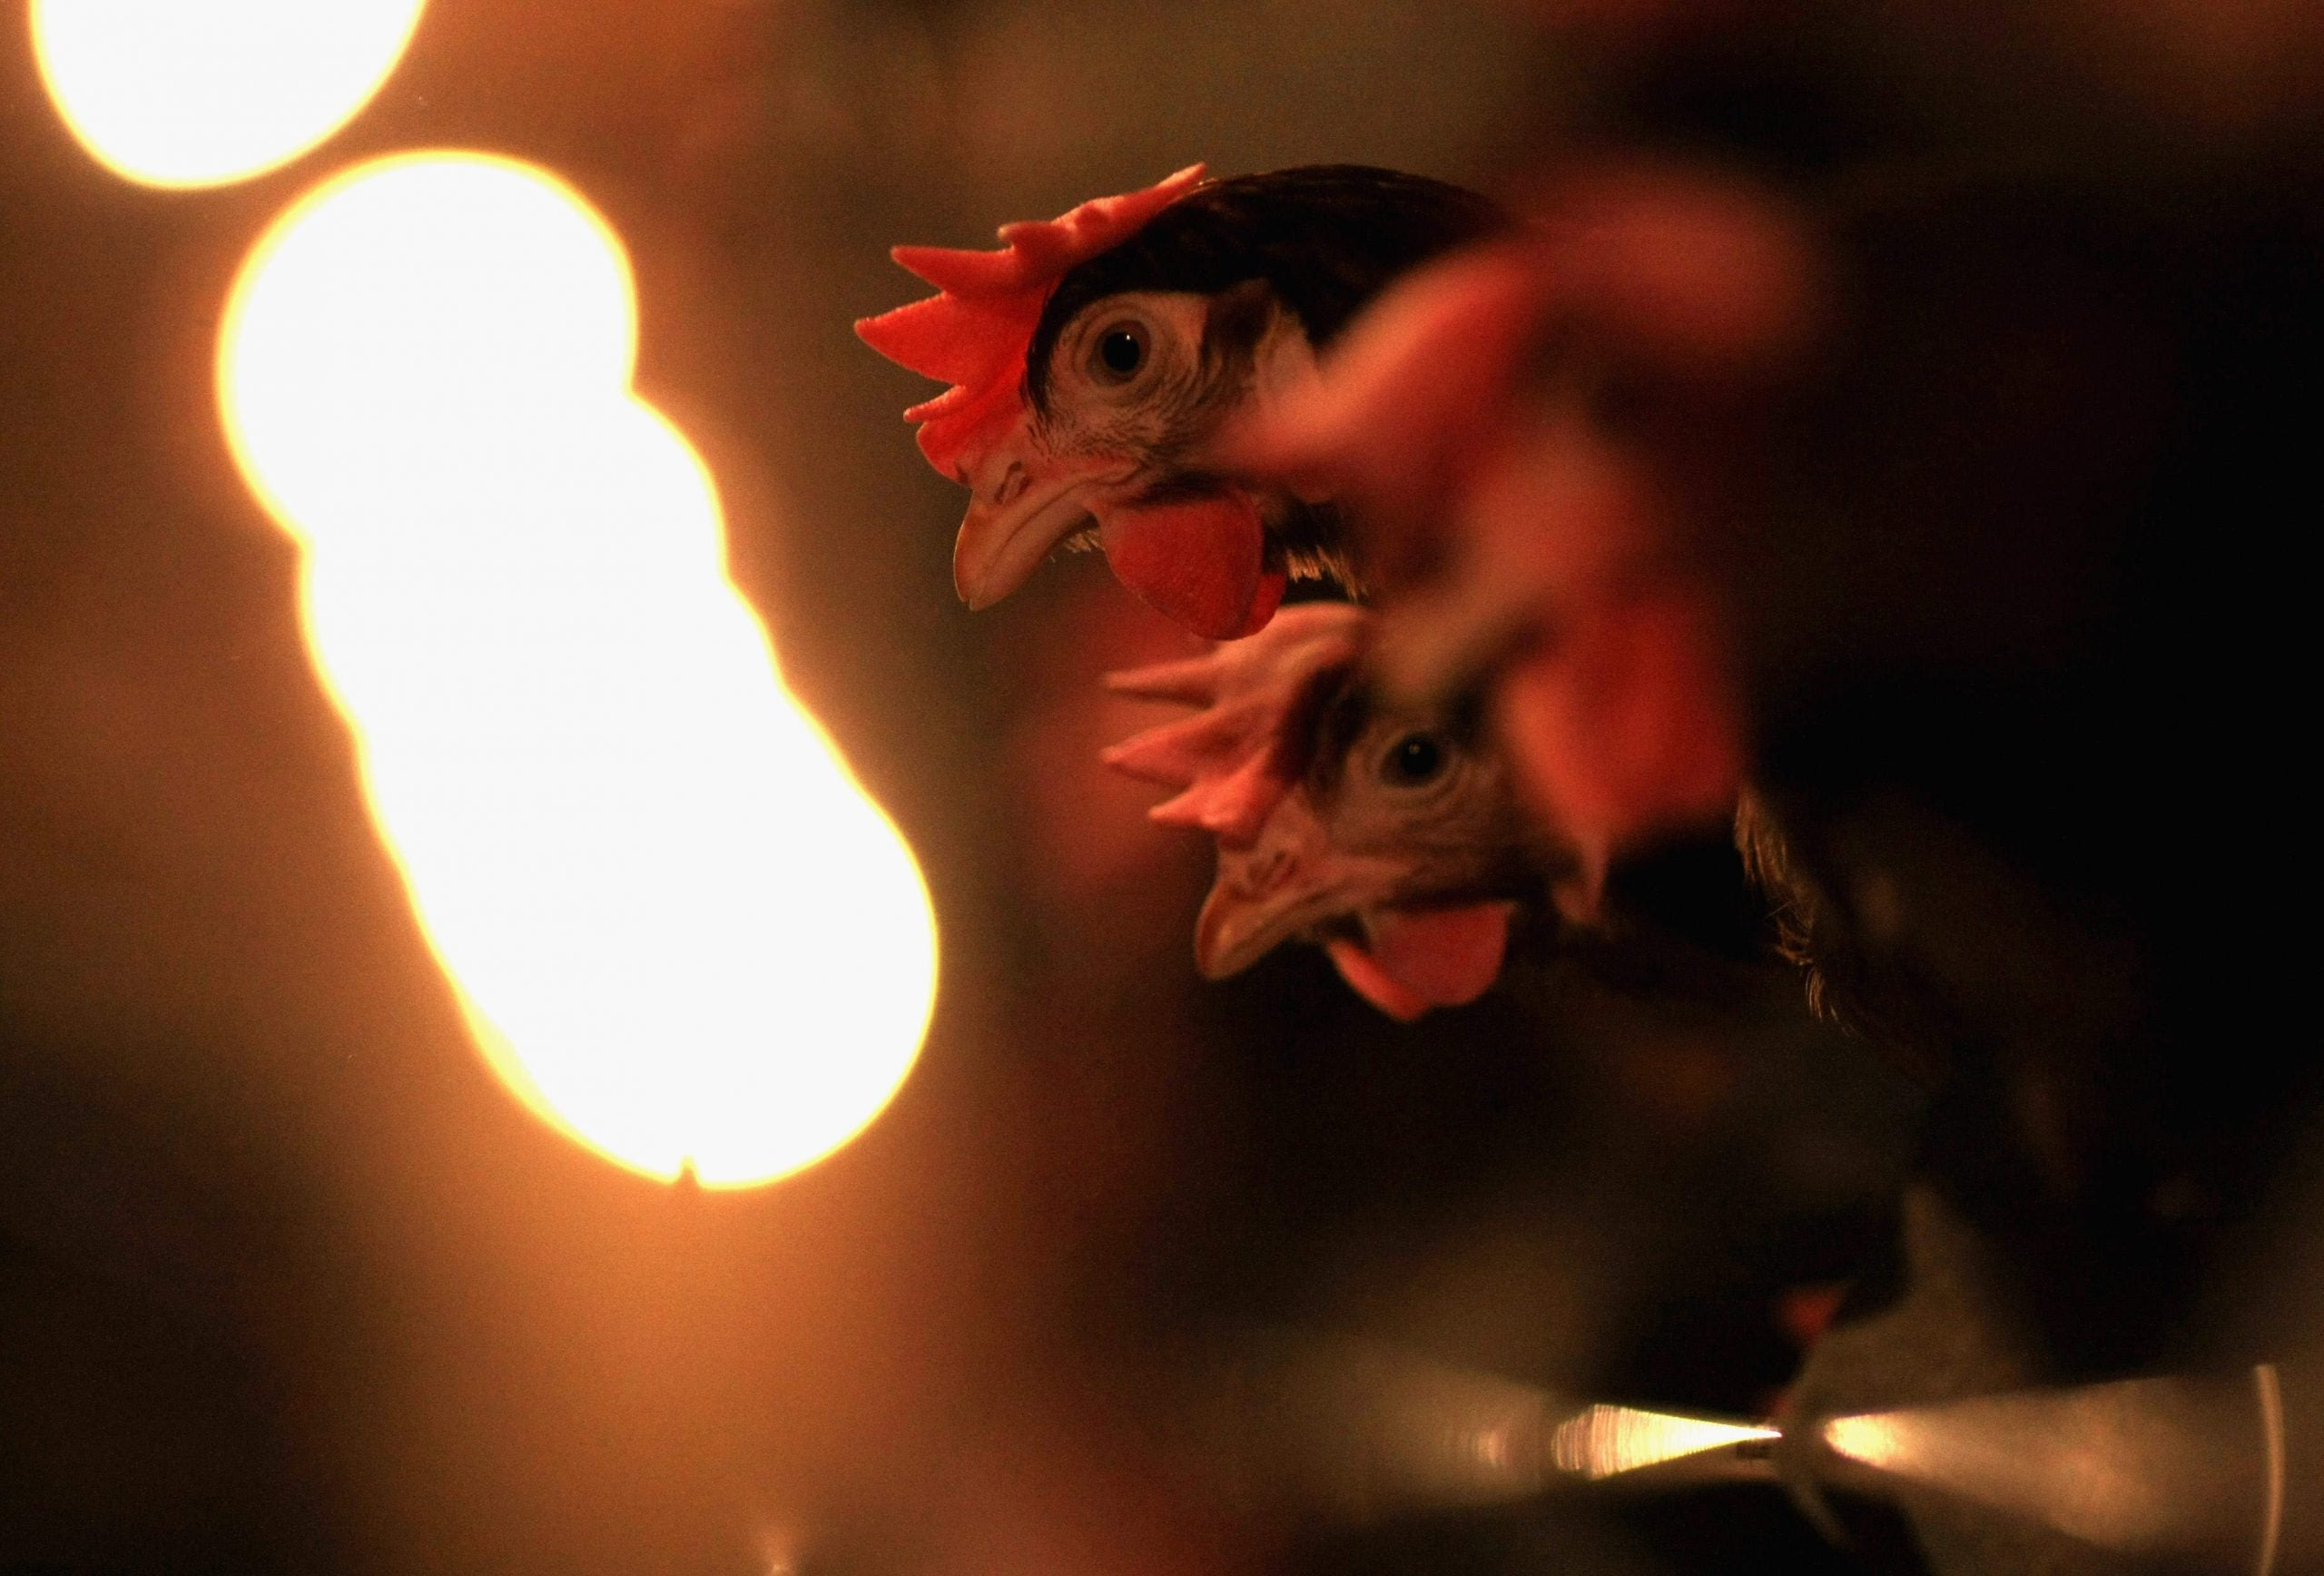 The reason chicken is a popular British food? Because we started factory farming